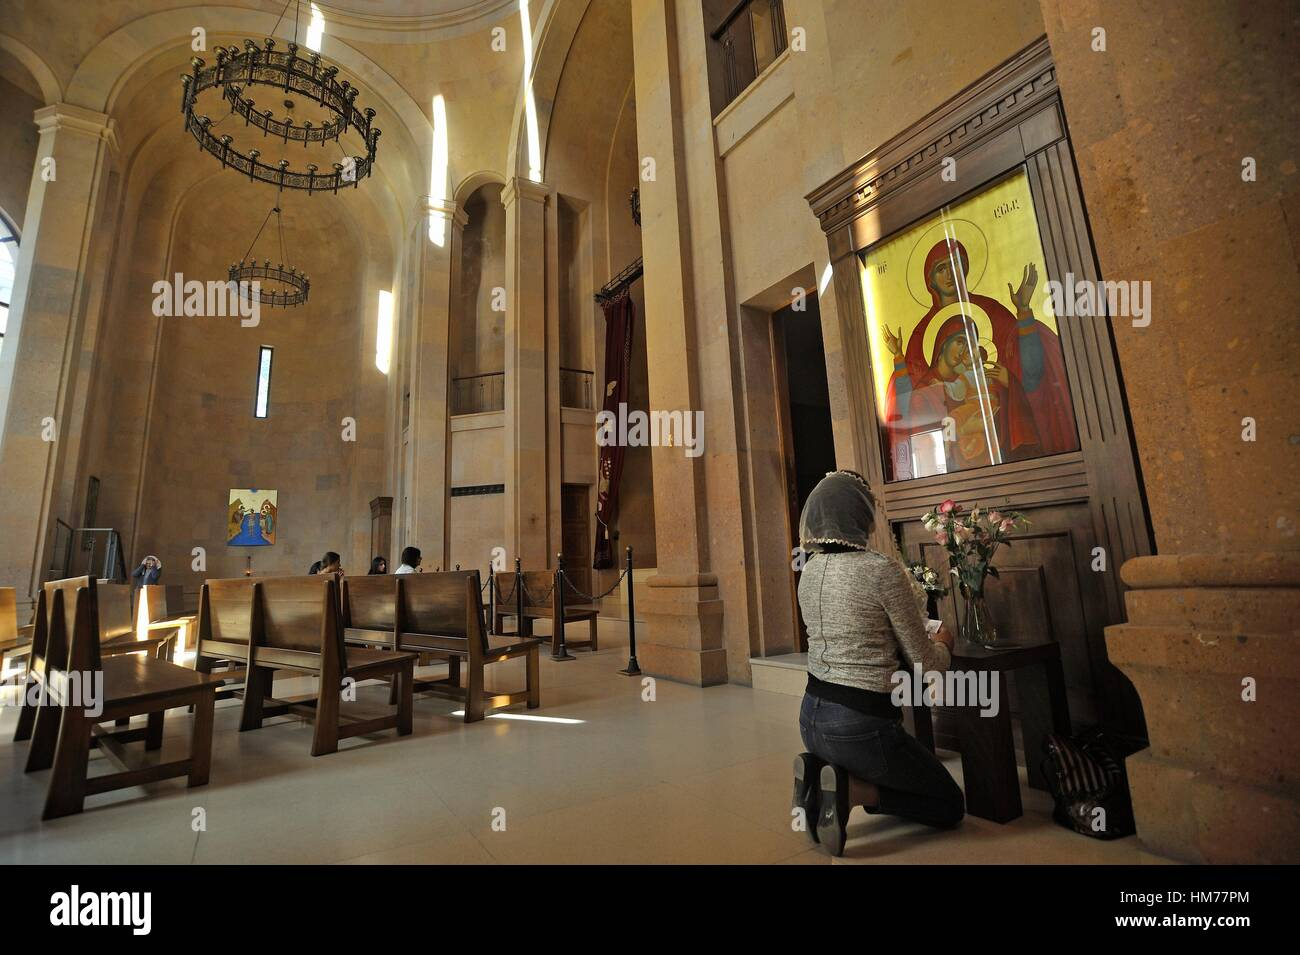 recollection inside Saint Anna Church adjacent to the 13th-century Katoghike ChurchKatoghike Holy Mother of God - Stock Image